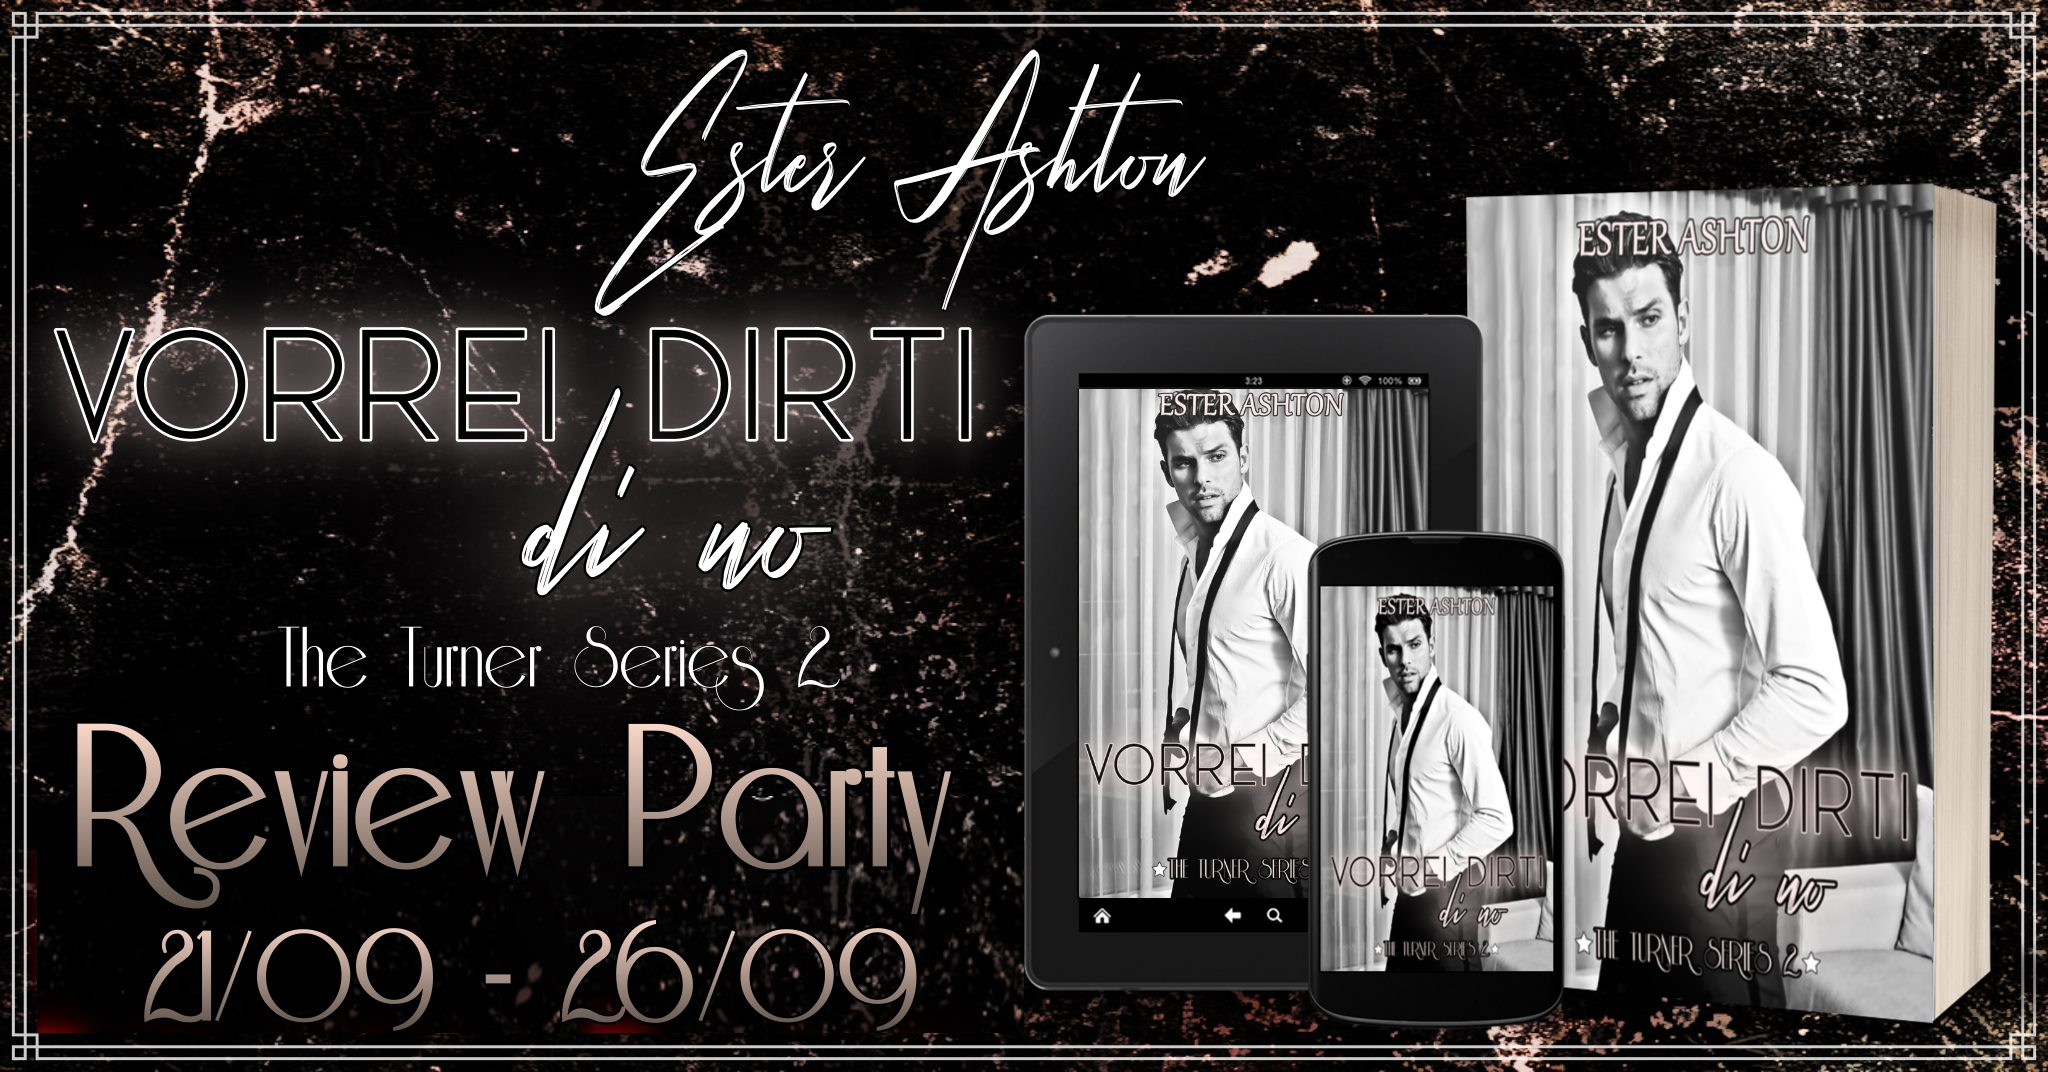 vorrei dirti di no di ester ashton review party